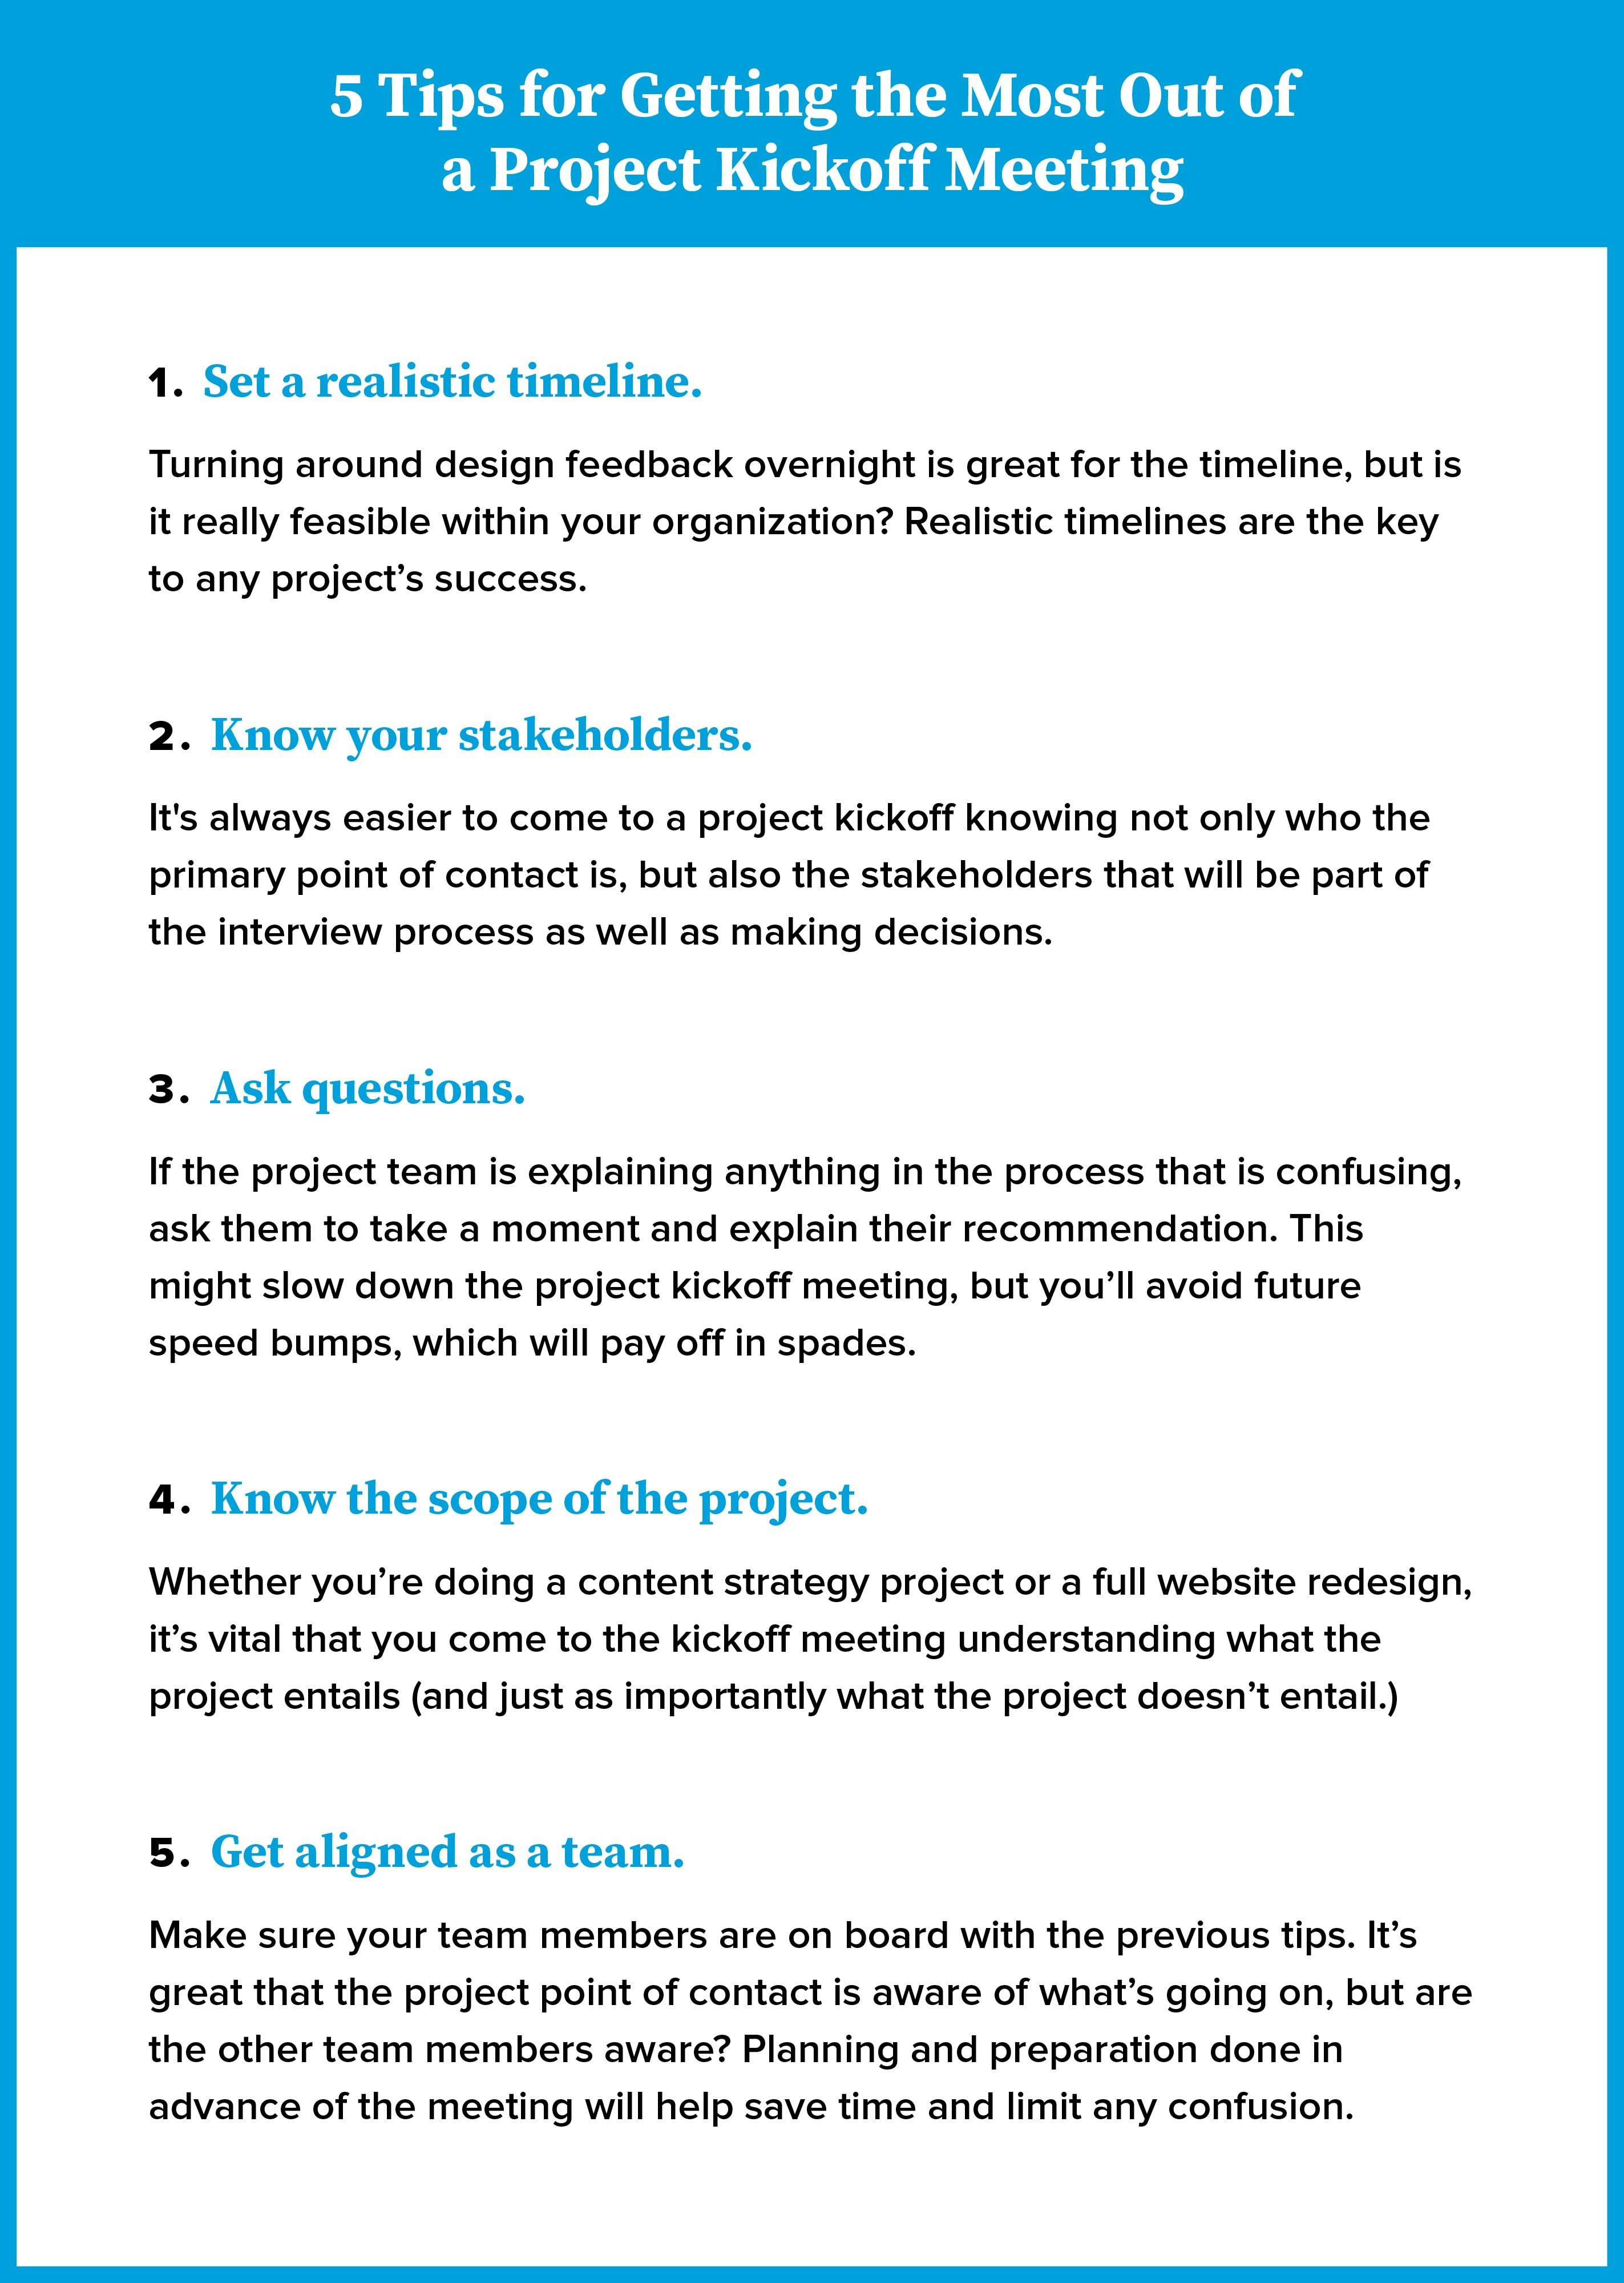 006 Awful Project Kickoff Meeting Email Template Sample  Kick OffFull